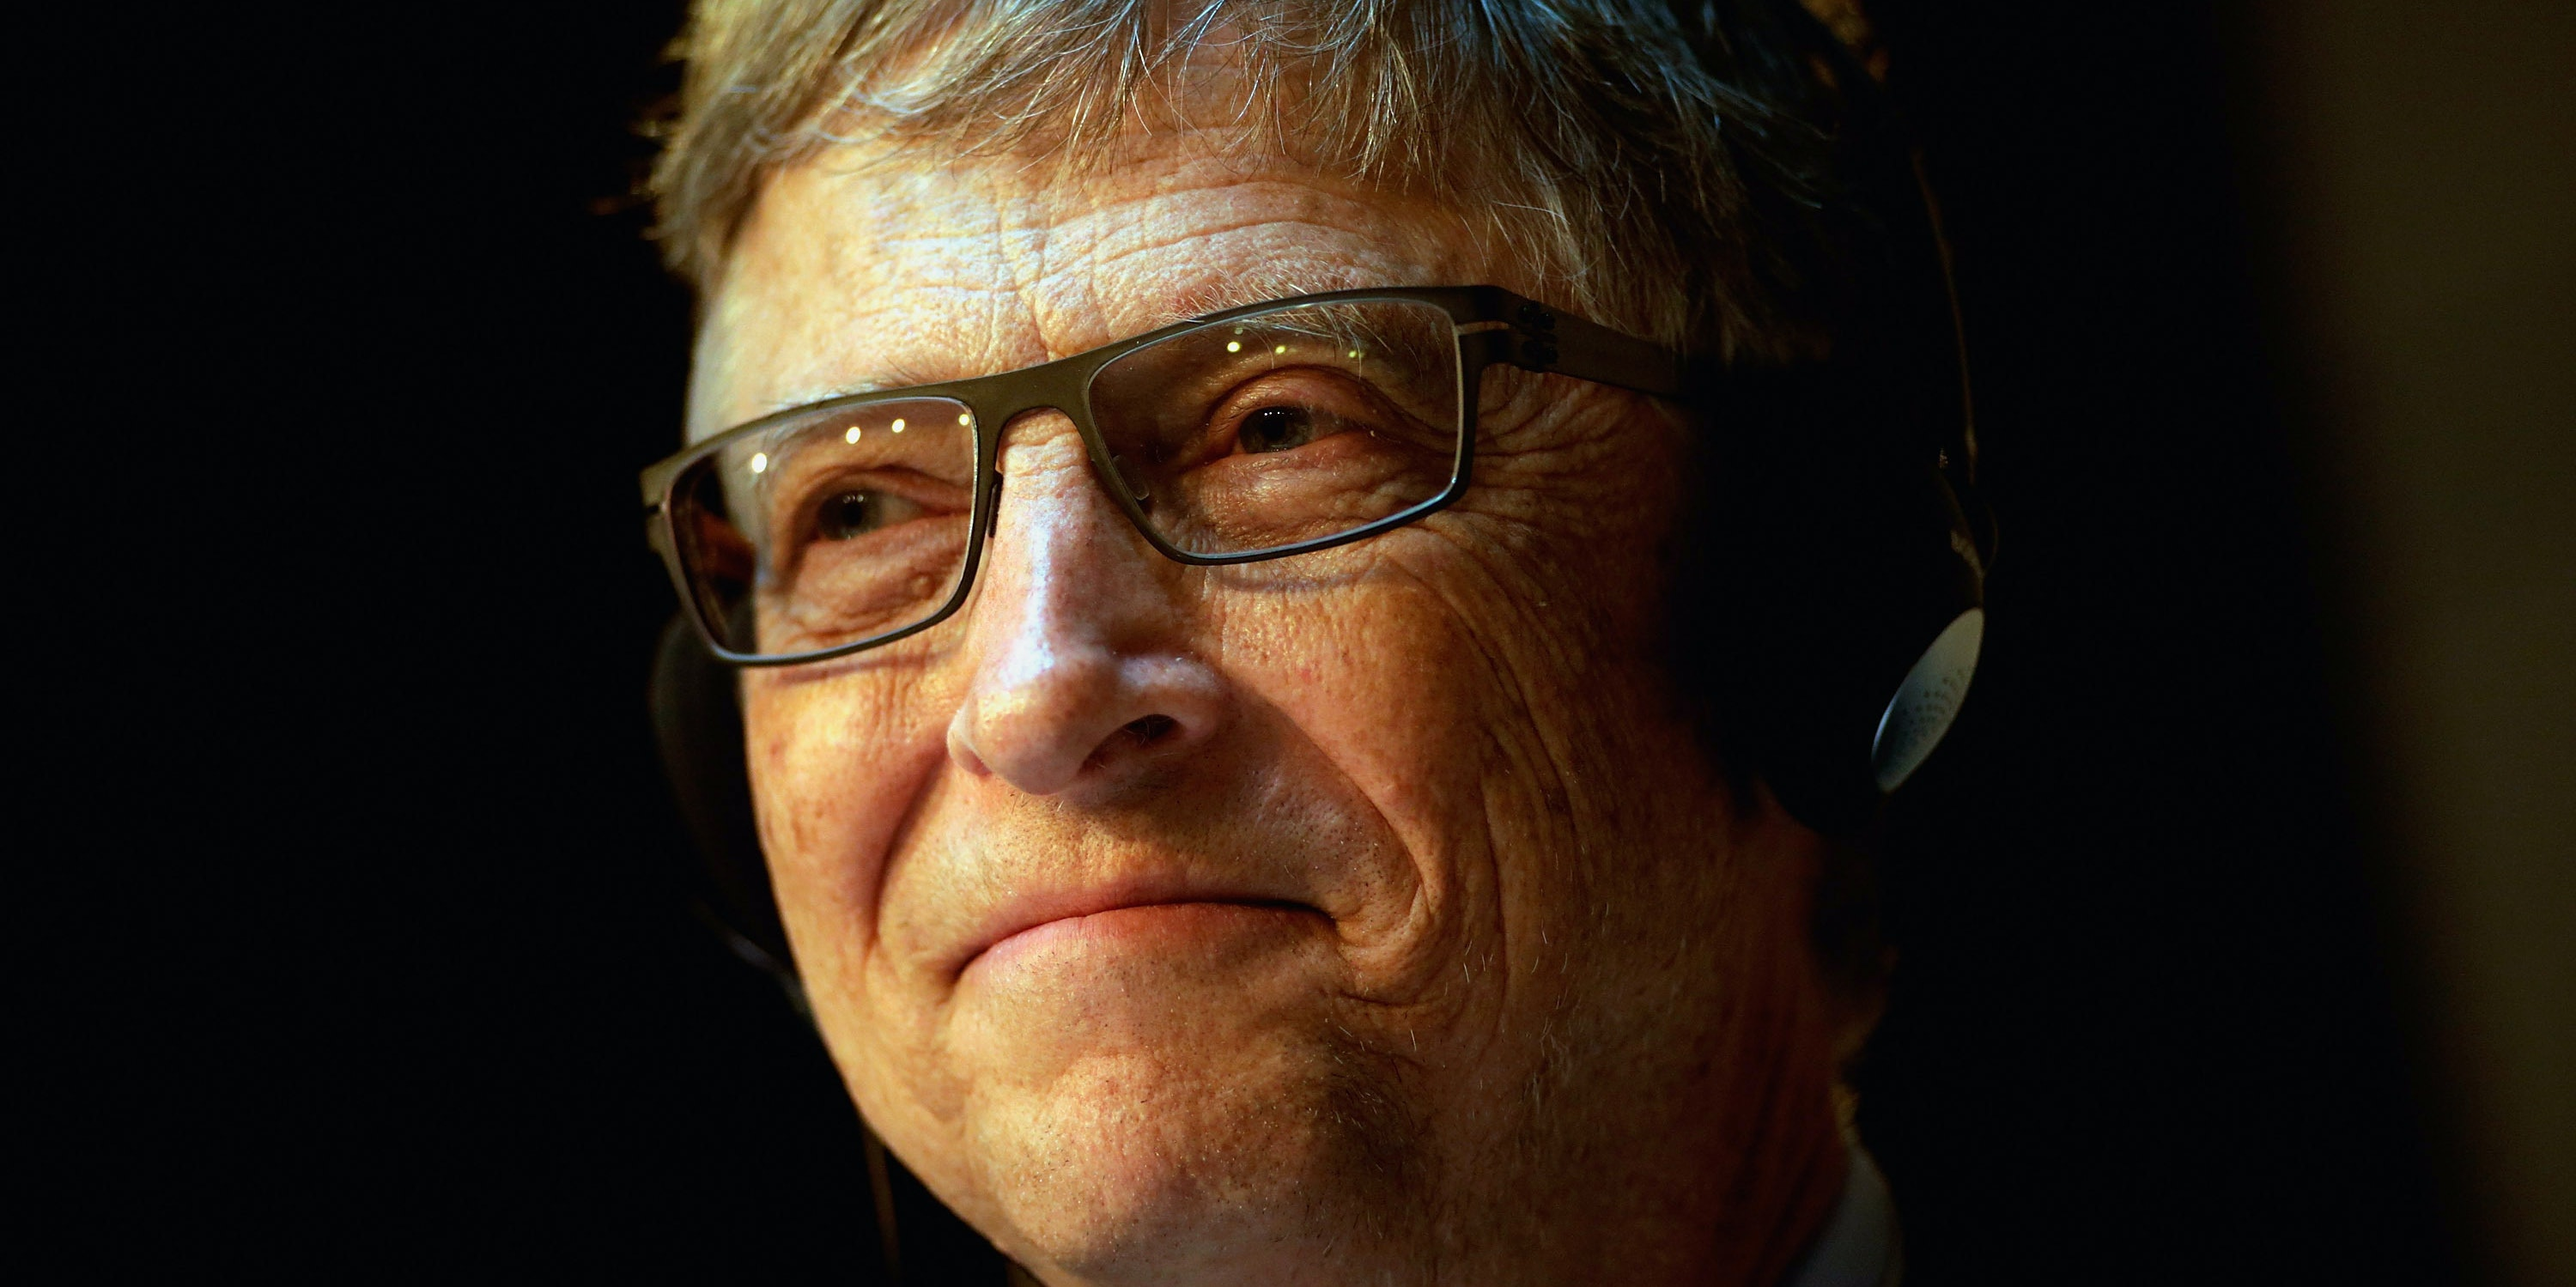 Bill Gates recently argued that lawmakers should tax automated jobs to make up for the lost tax revenue from workers whose jobs are being lost to automation. Not everybody agrees.